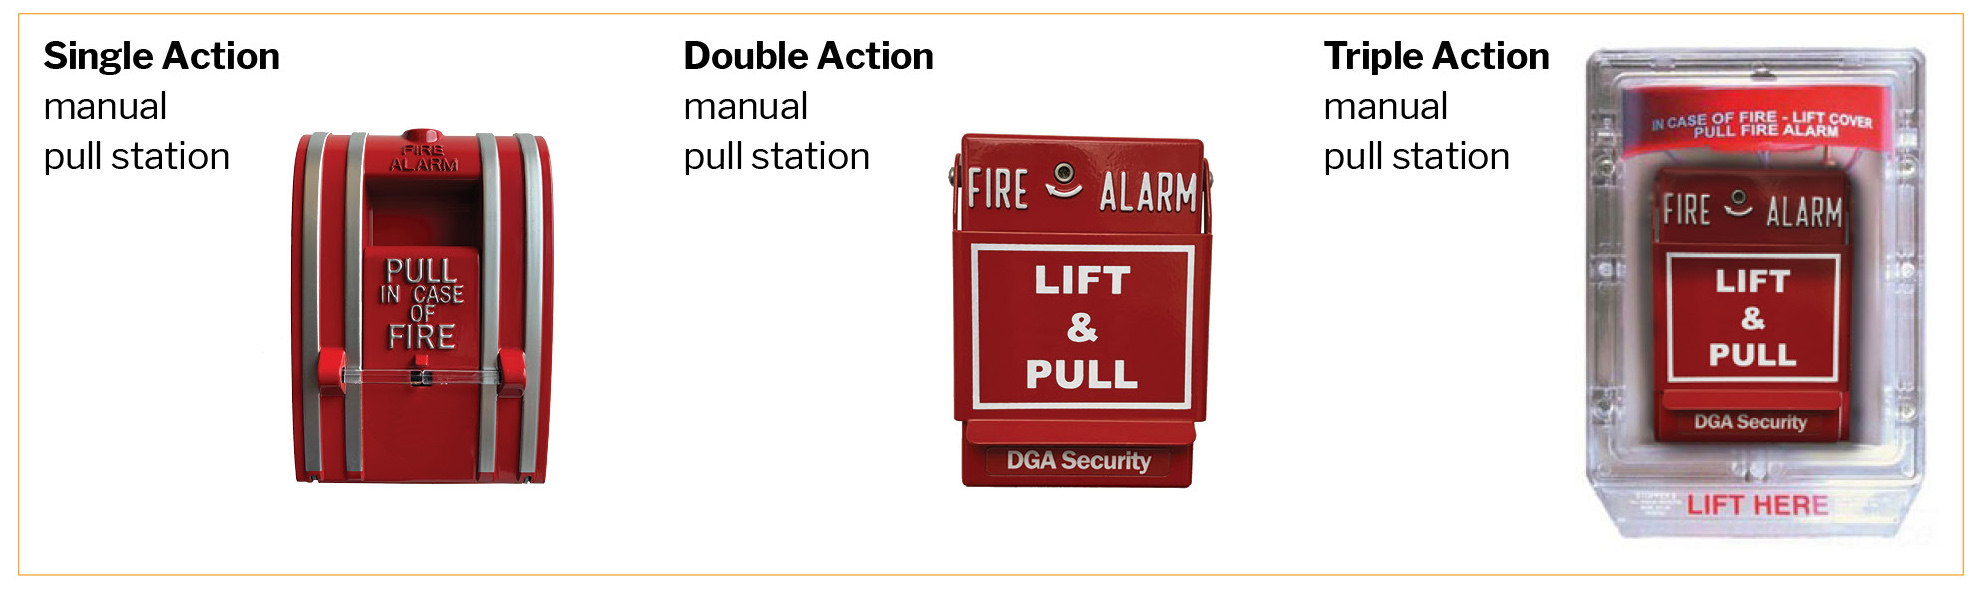 Fire Alarm Manual Pull Stations